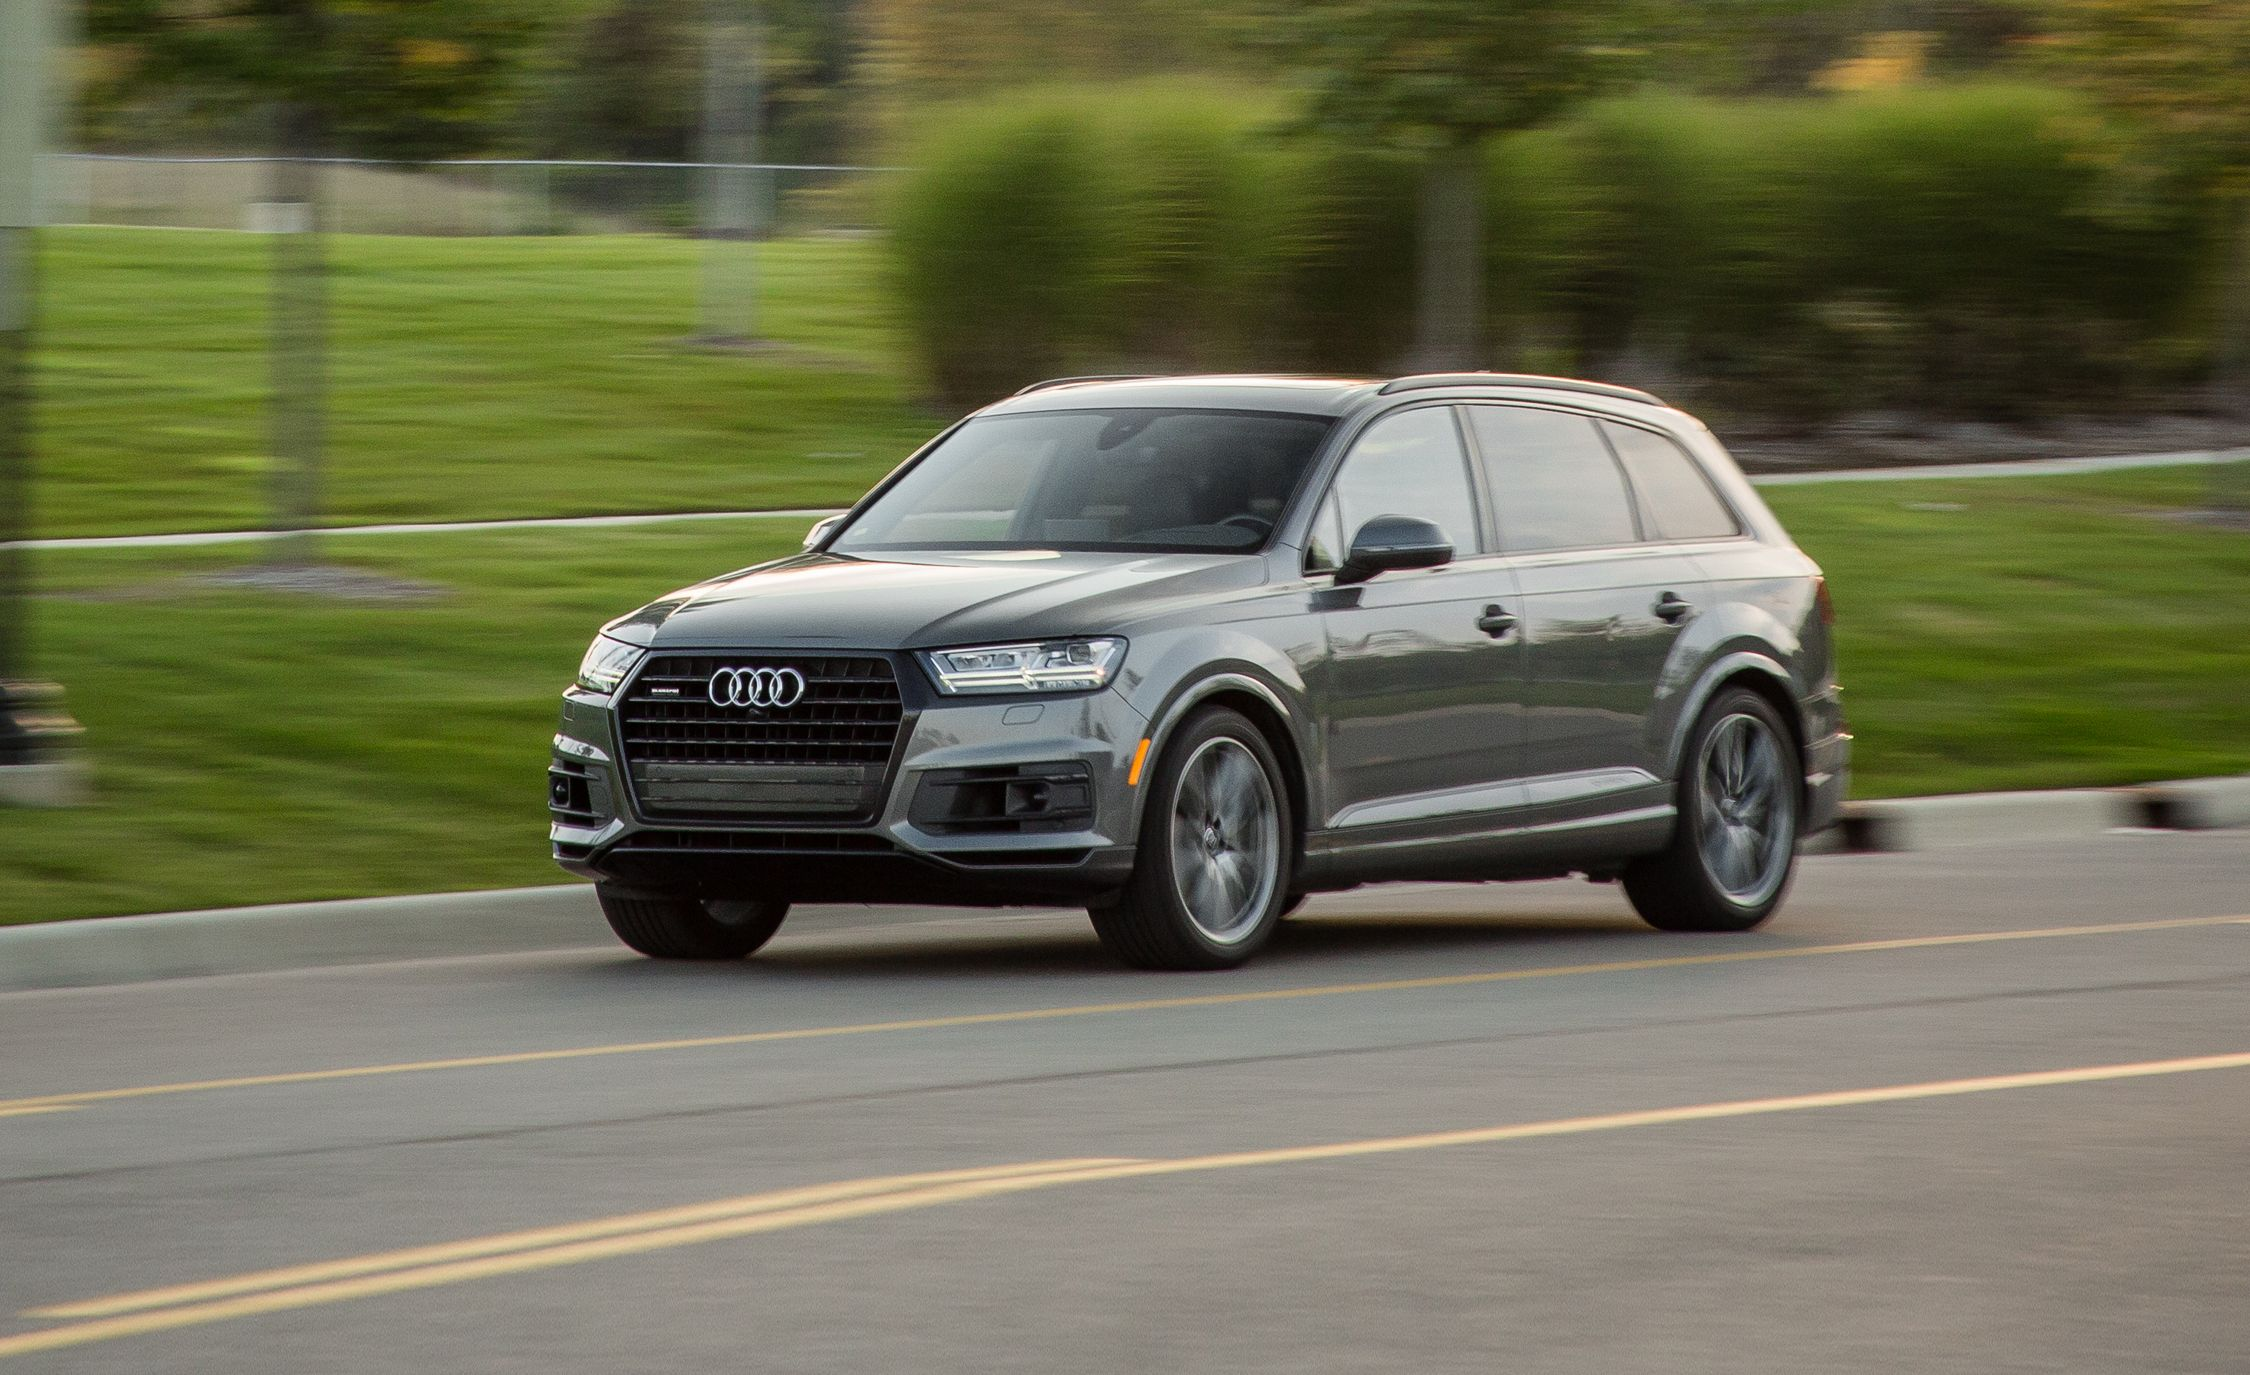 2017 audi q7 long term test update review car and driver photo 677929 s original